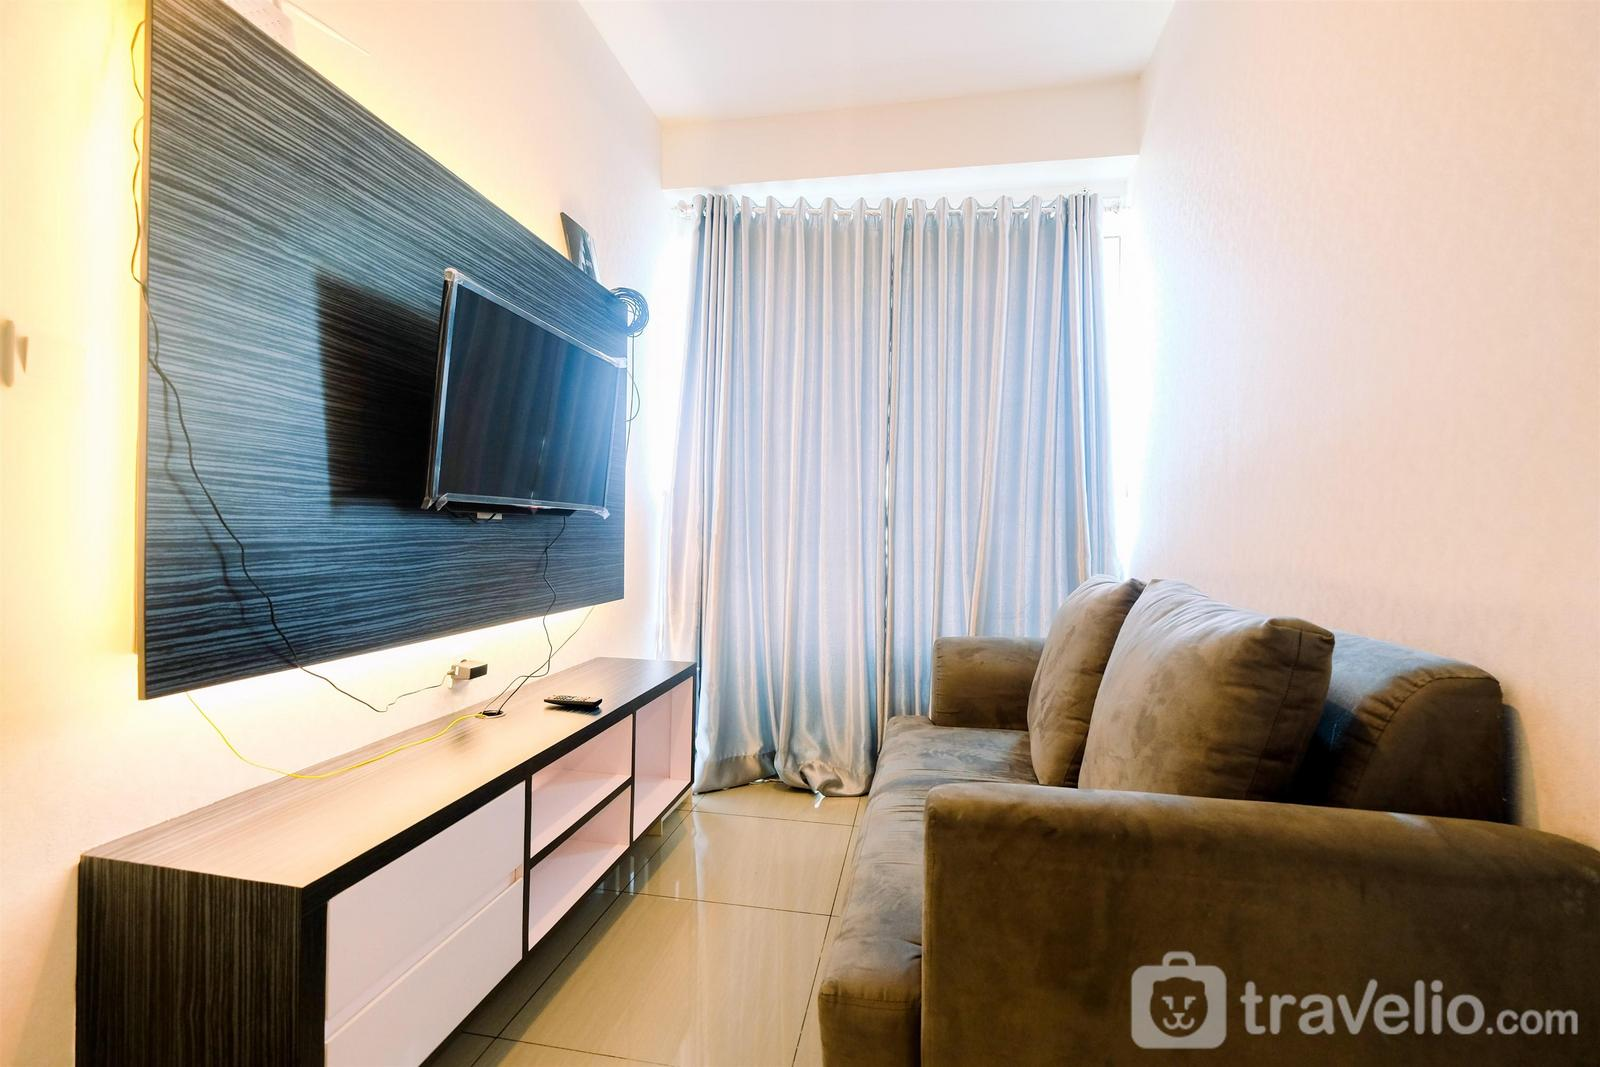 Grand Kamala Lagoon - New Furnished 2BR at Grand Kamala Lagoon Apartment By Travelio